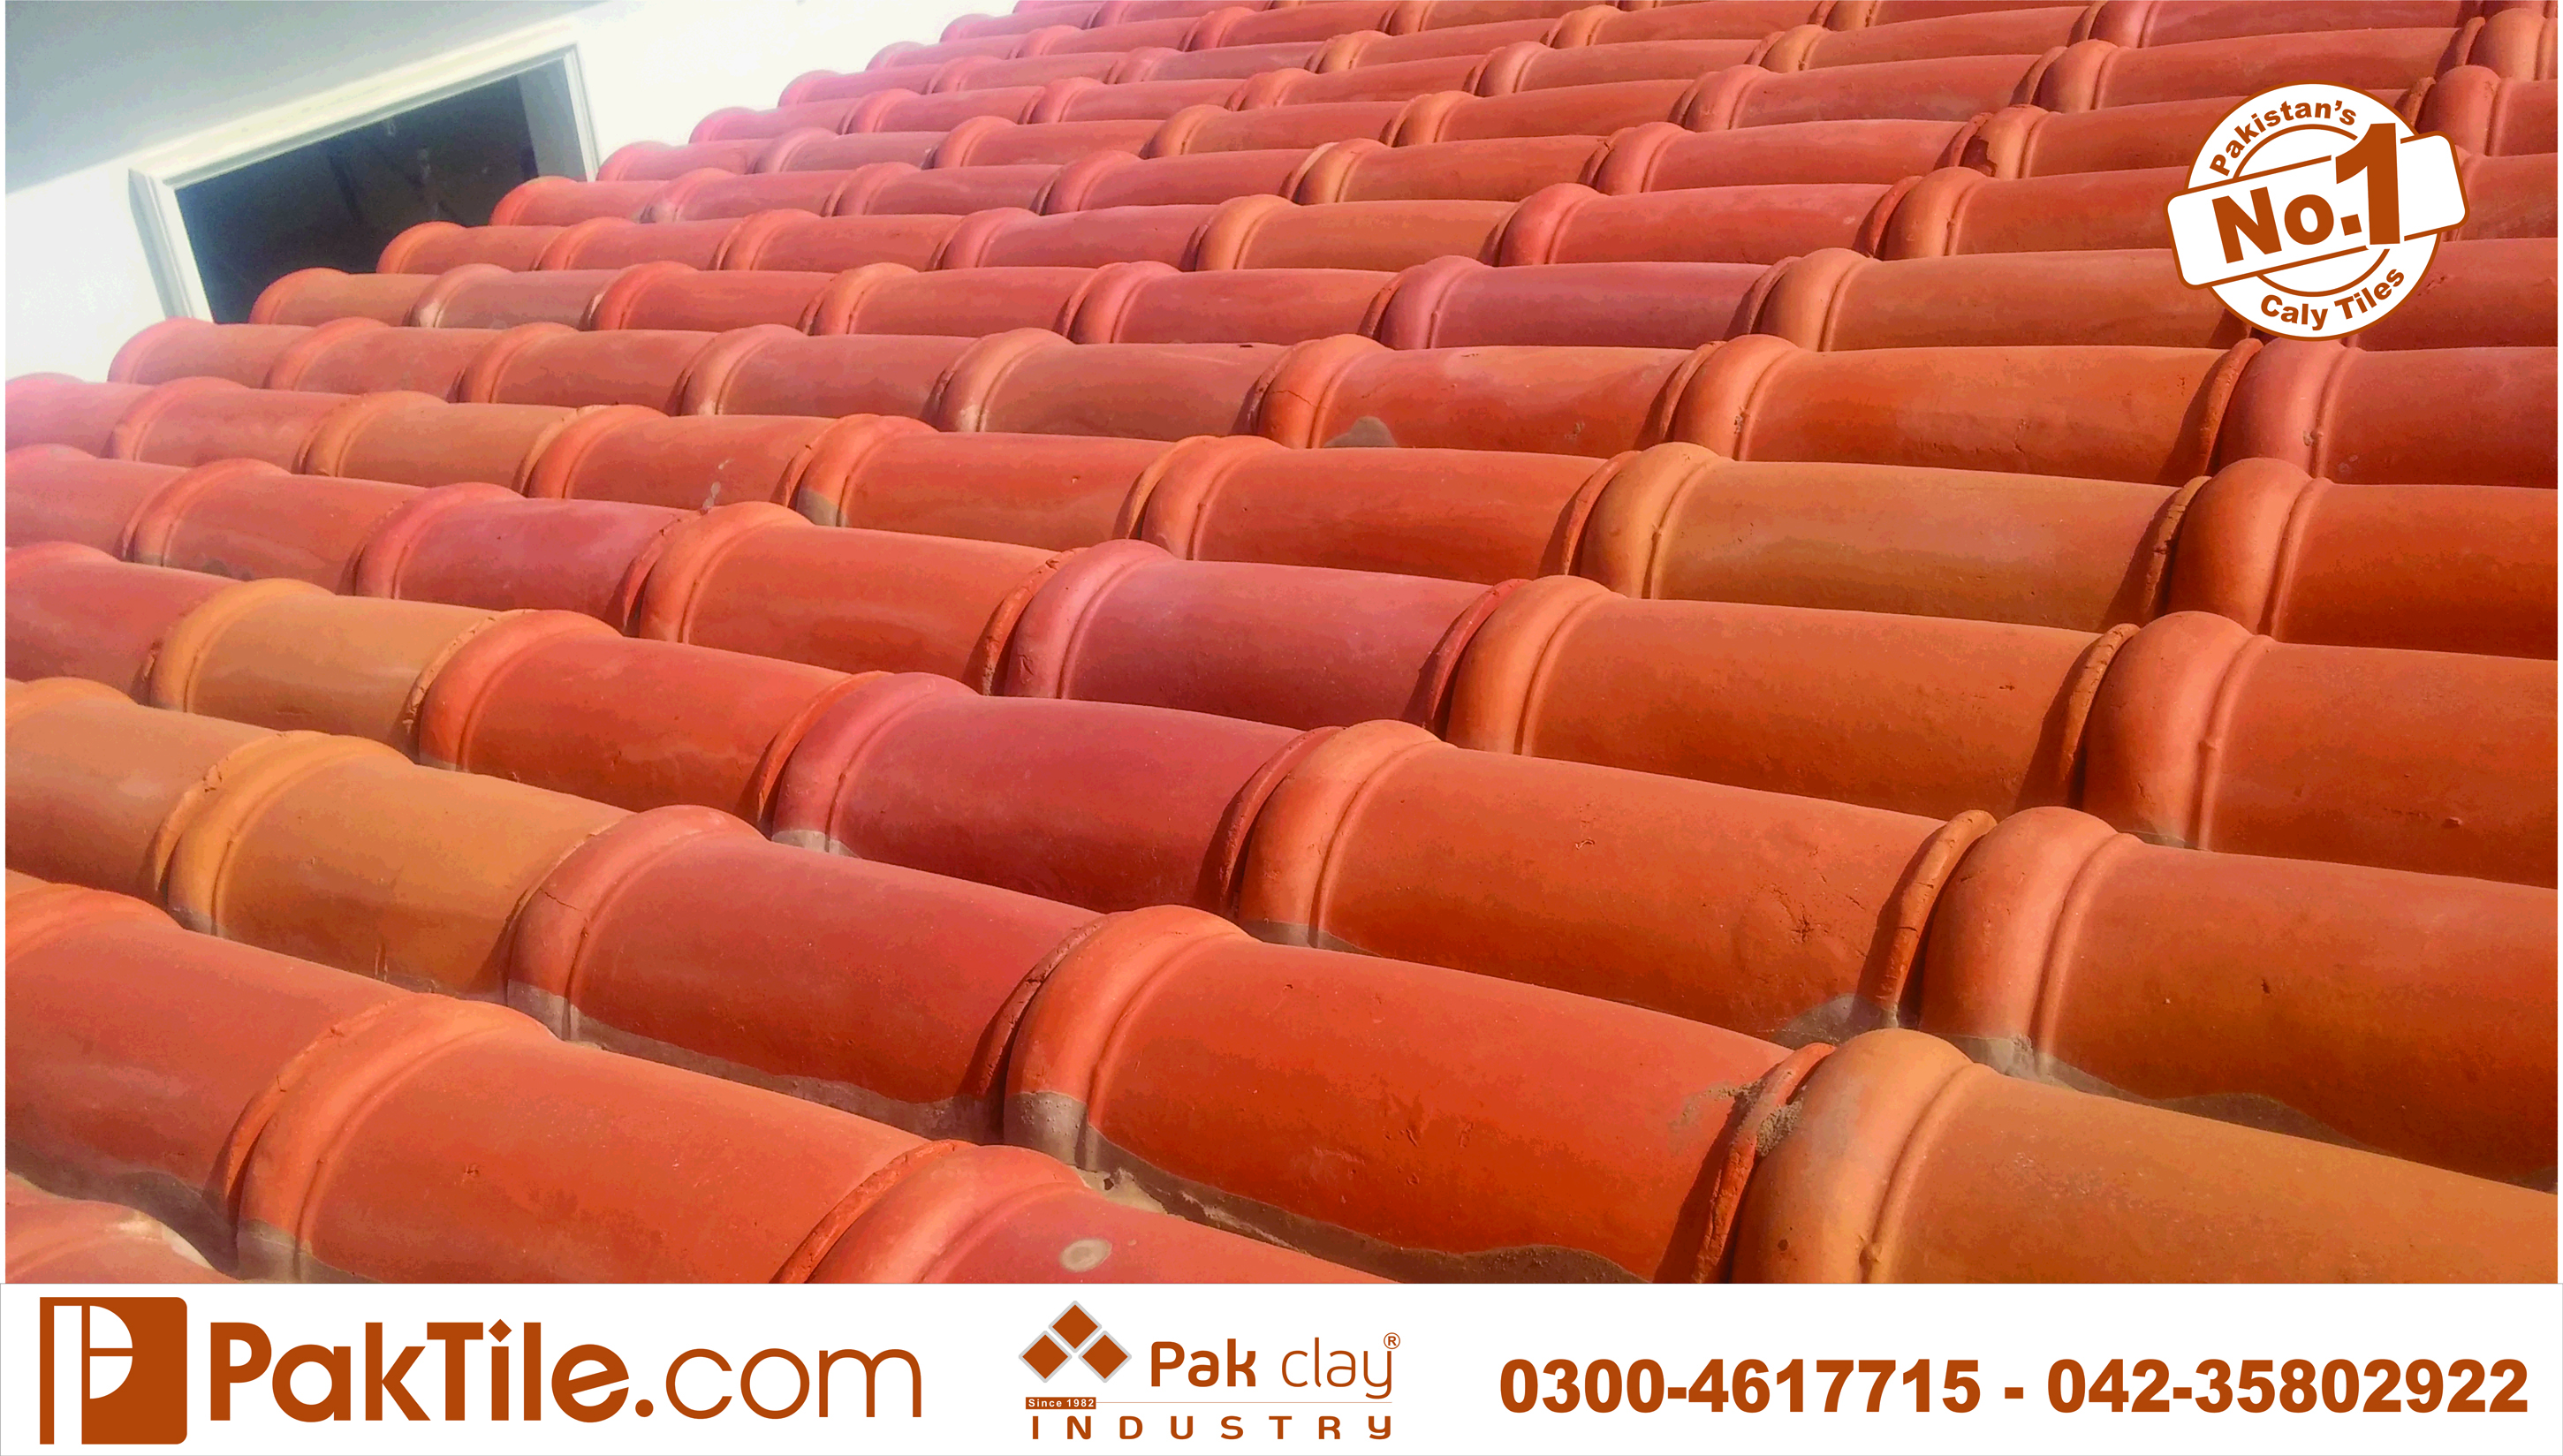 Color full range roofing materials supply sialkot khaprail big and small sizetiles rates house design pictures in lahore pakistan